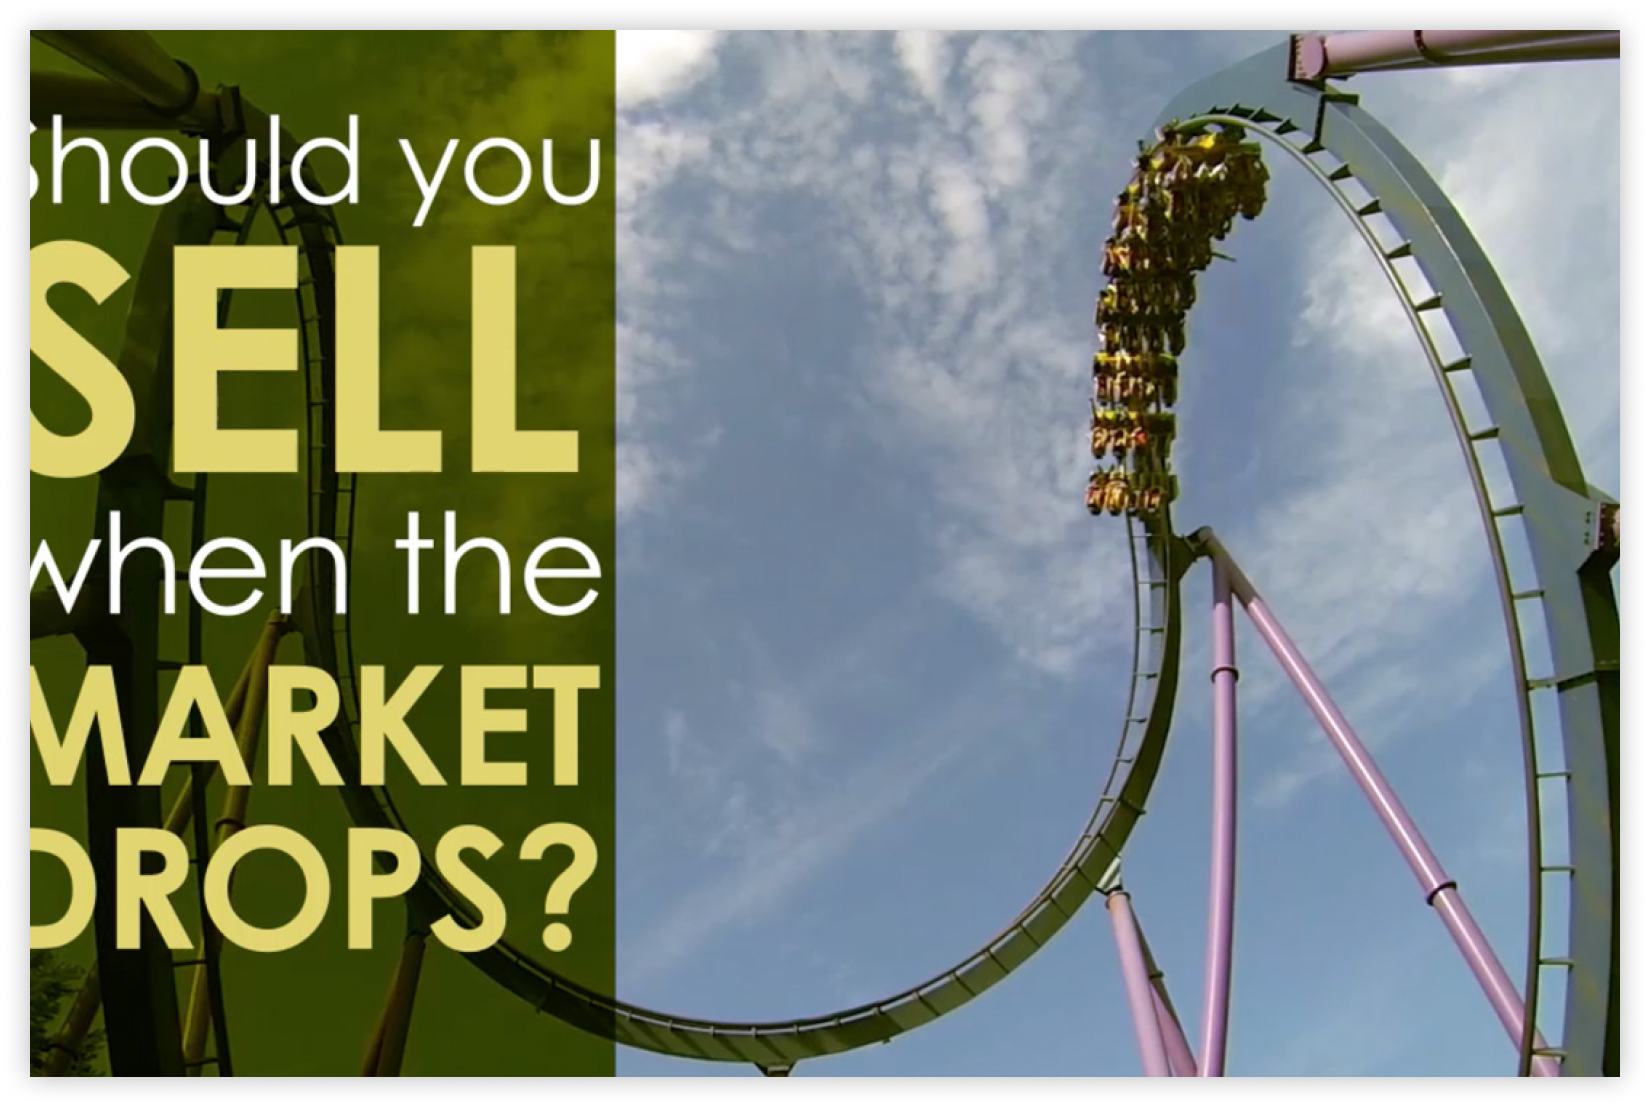 Should You Sell When the Market Drops? Thumbnail